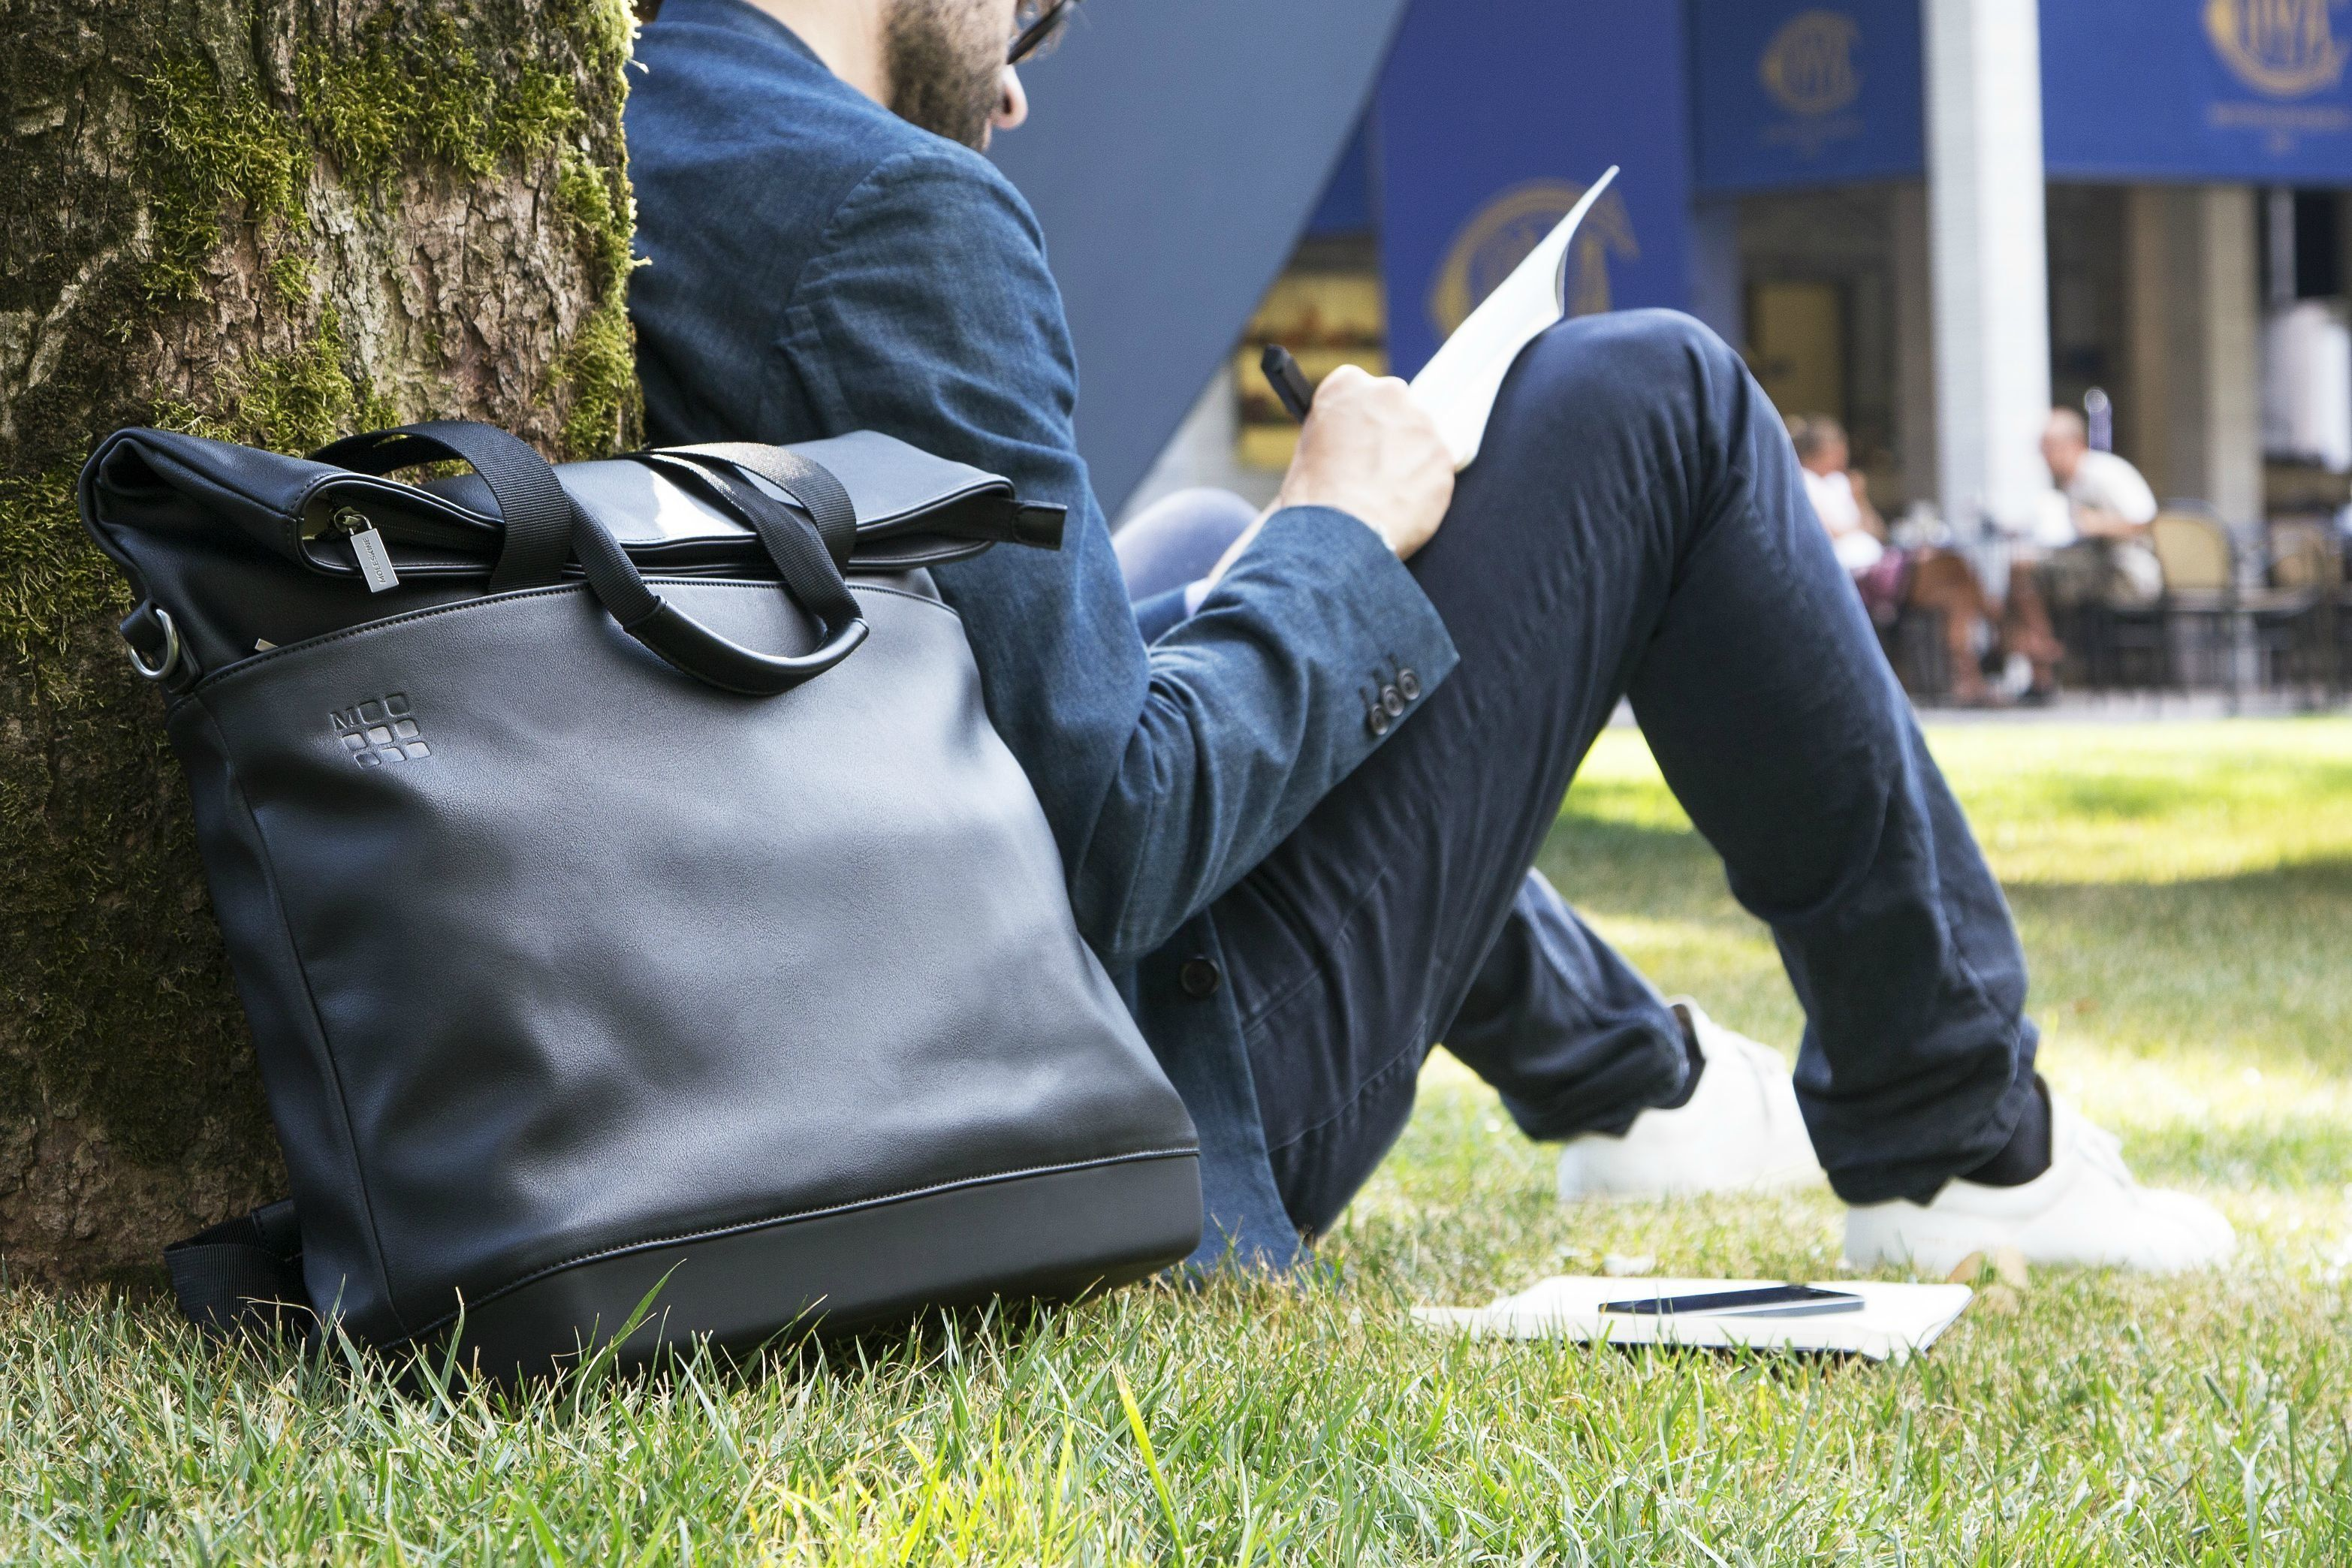 The notebook wizards at Moleskinedesigned a line of bags to help you carry them all, as well as your gadgets. Moleskine